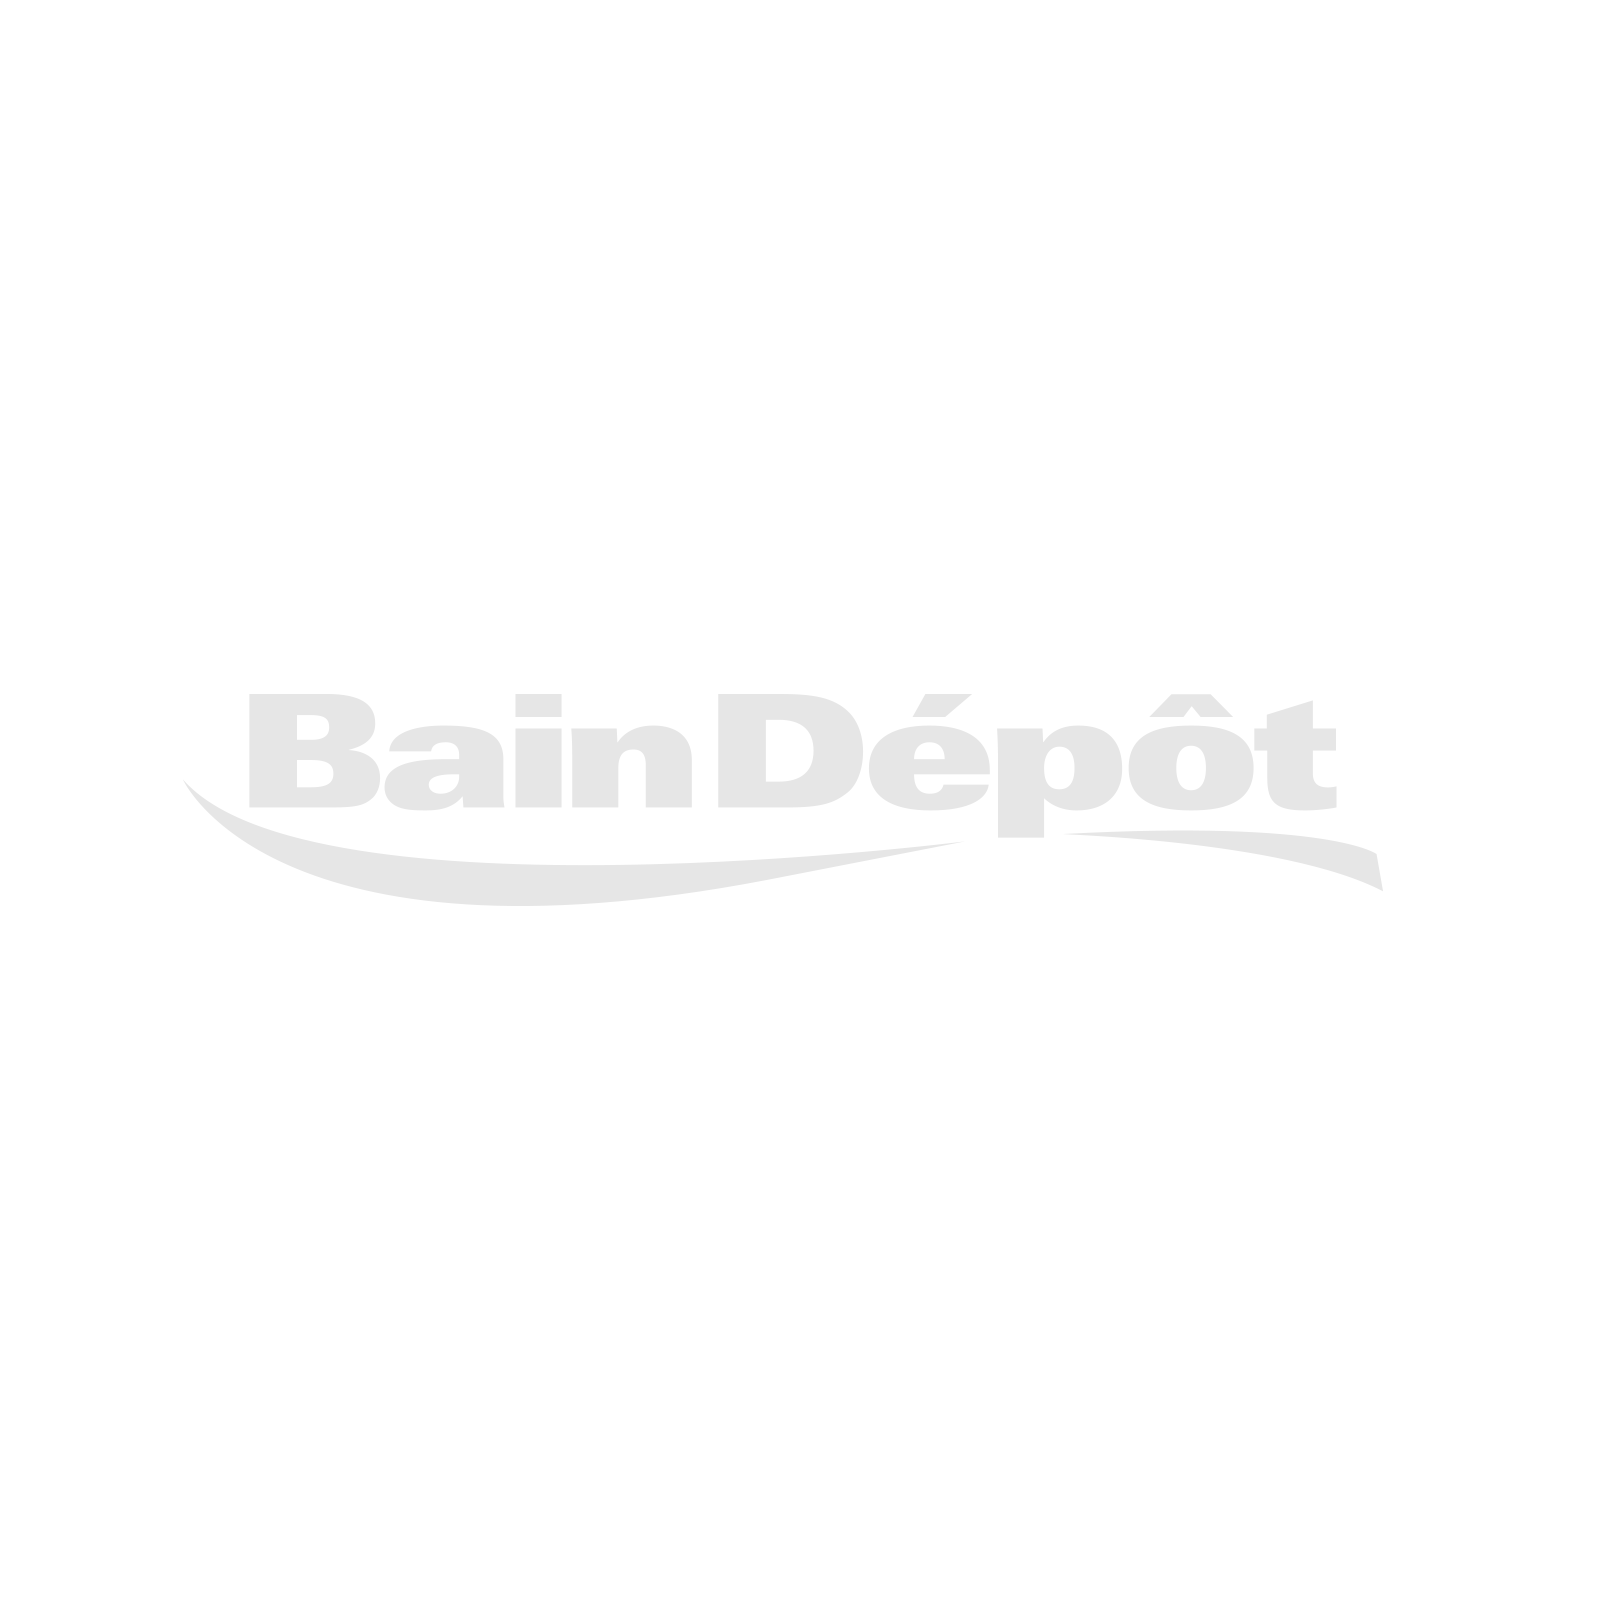 "38"" x 38"" Complete neo-angle shower set with door, base, walls and faucet"